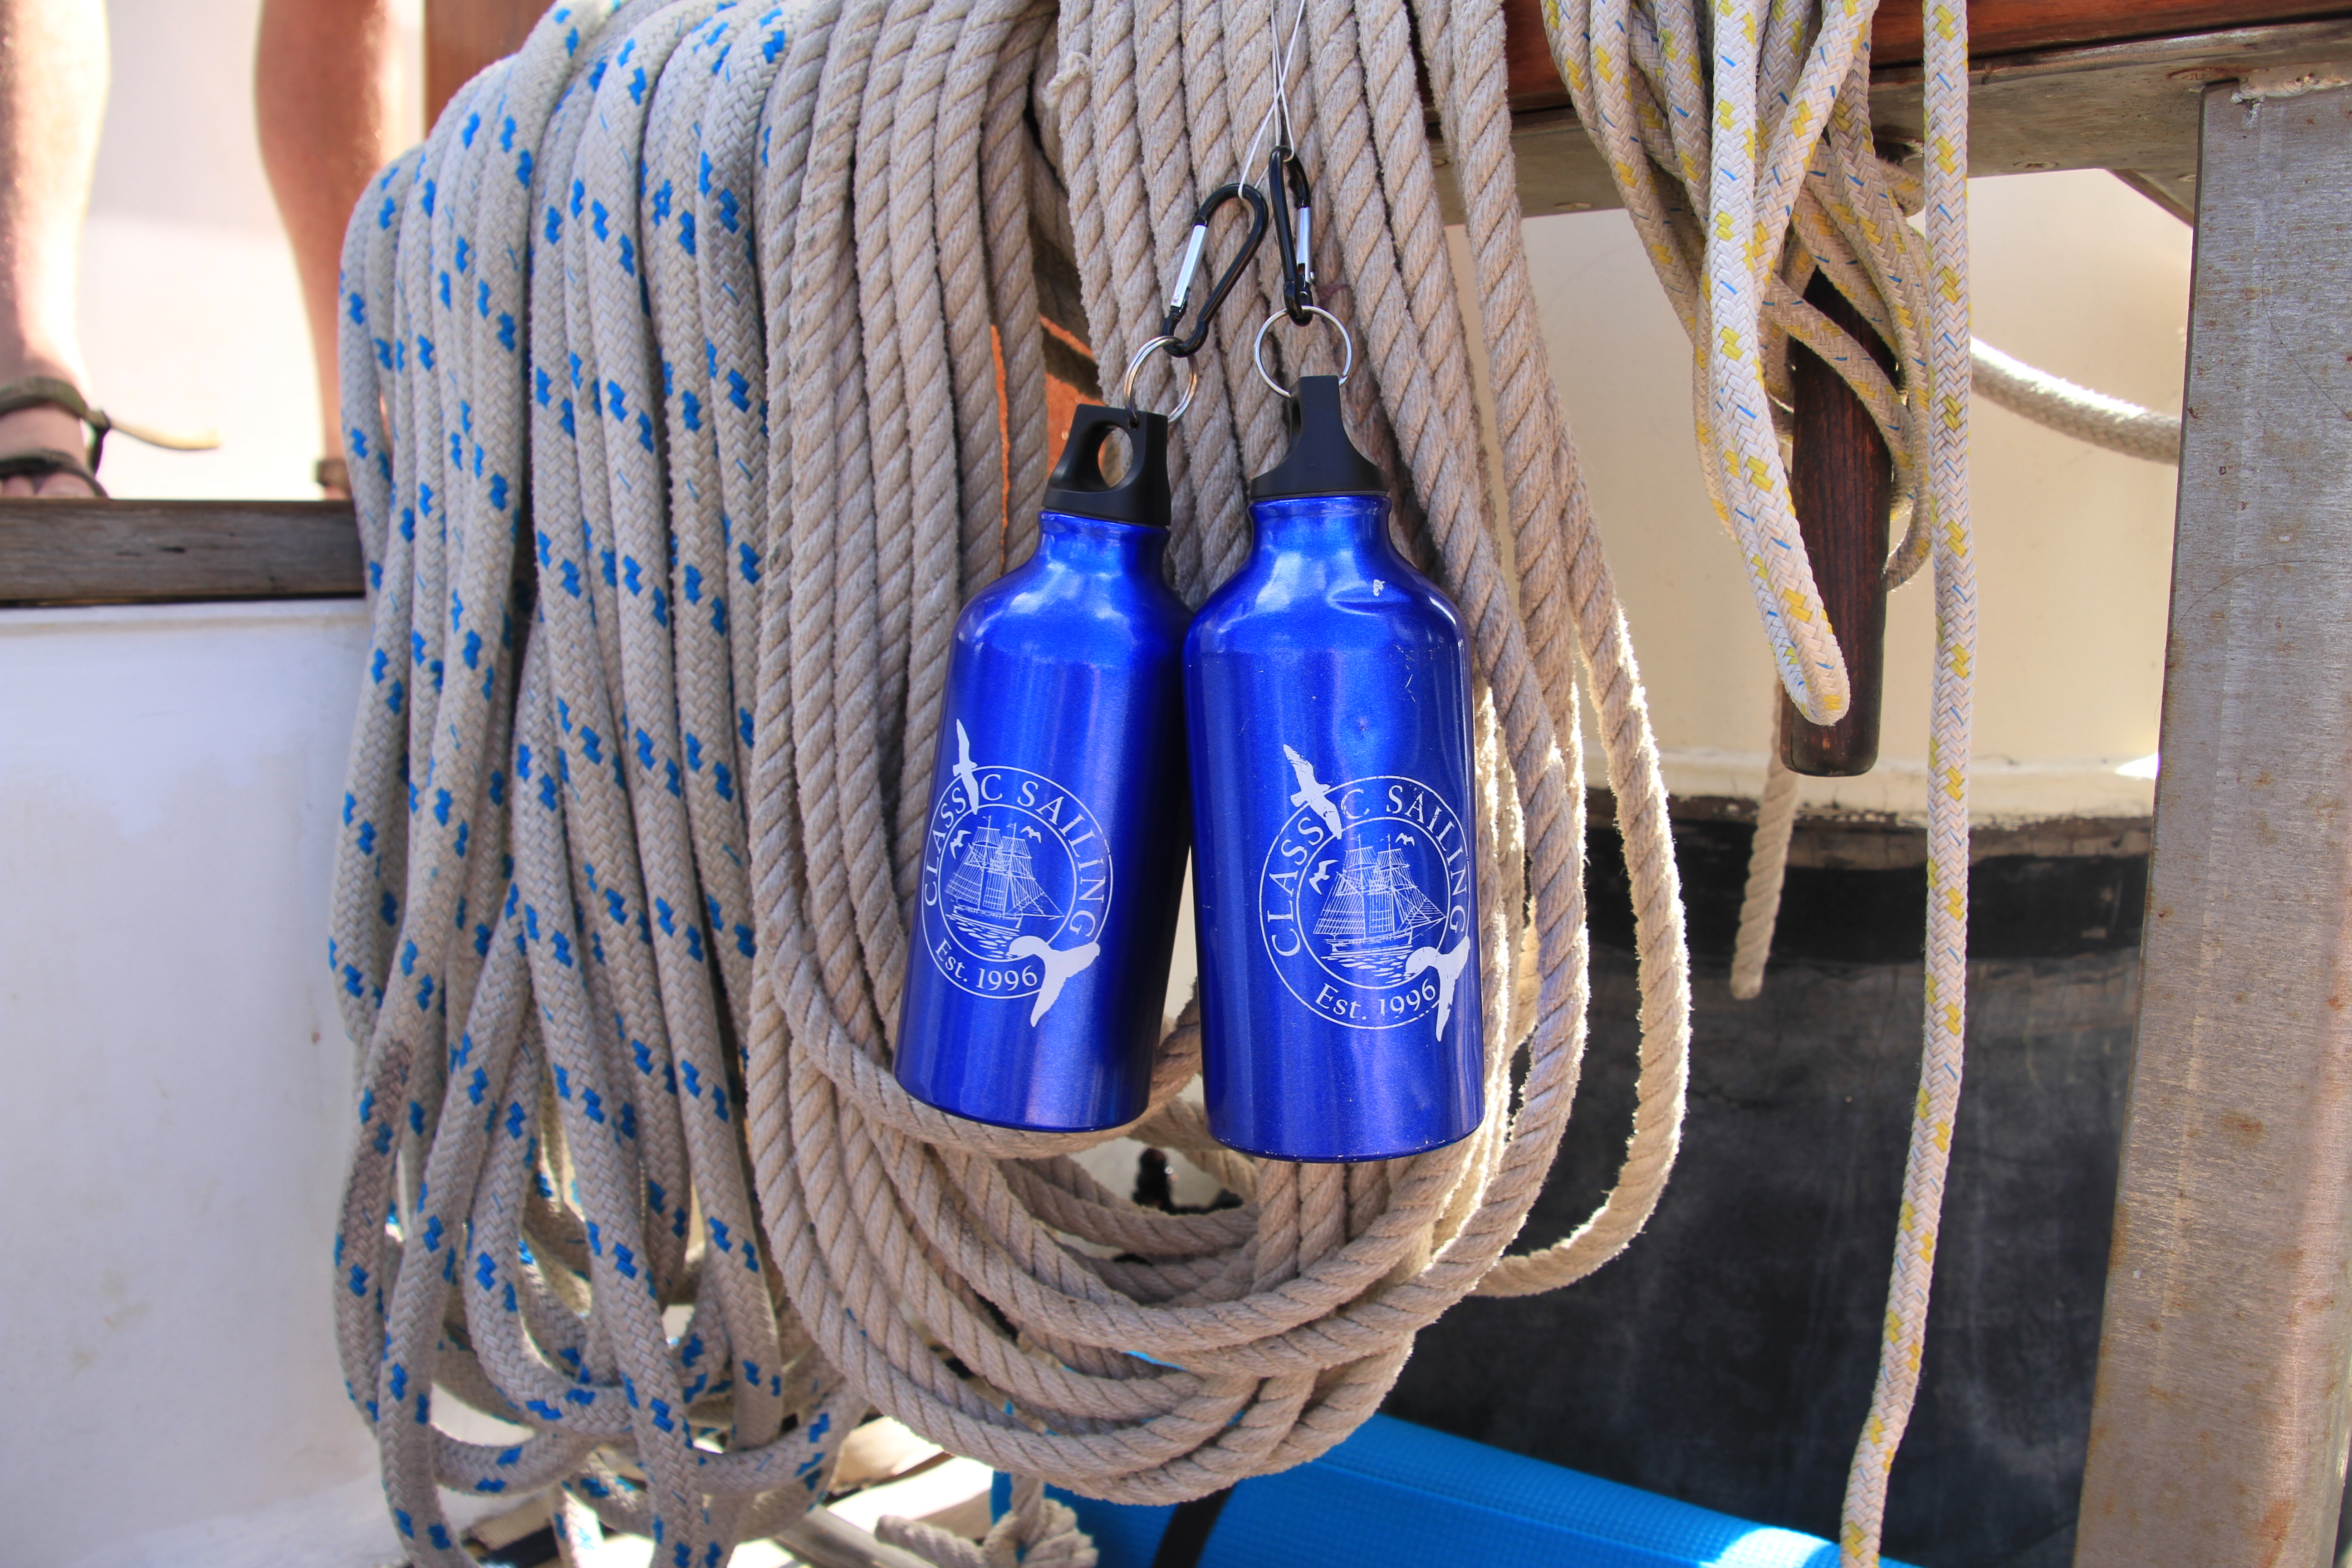 Take a waterbottle onboard to keep hydrated while out at sea